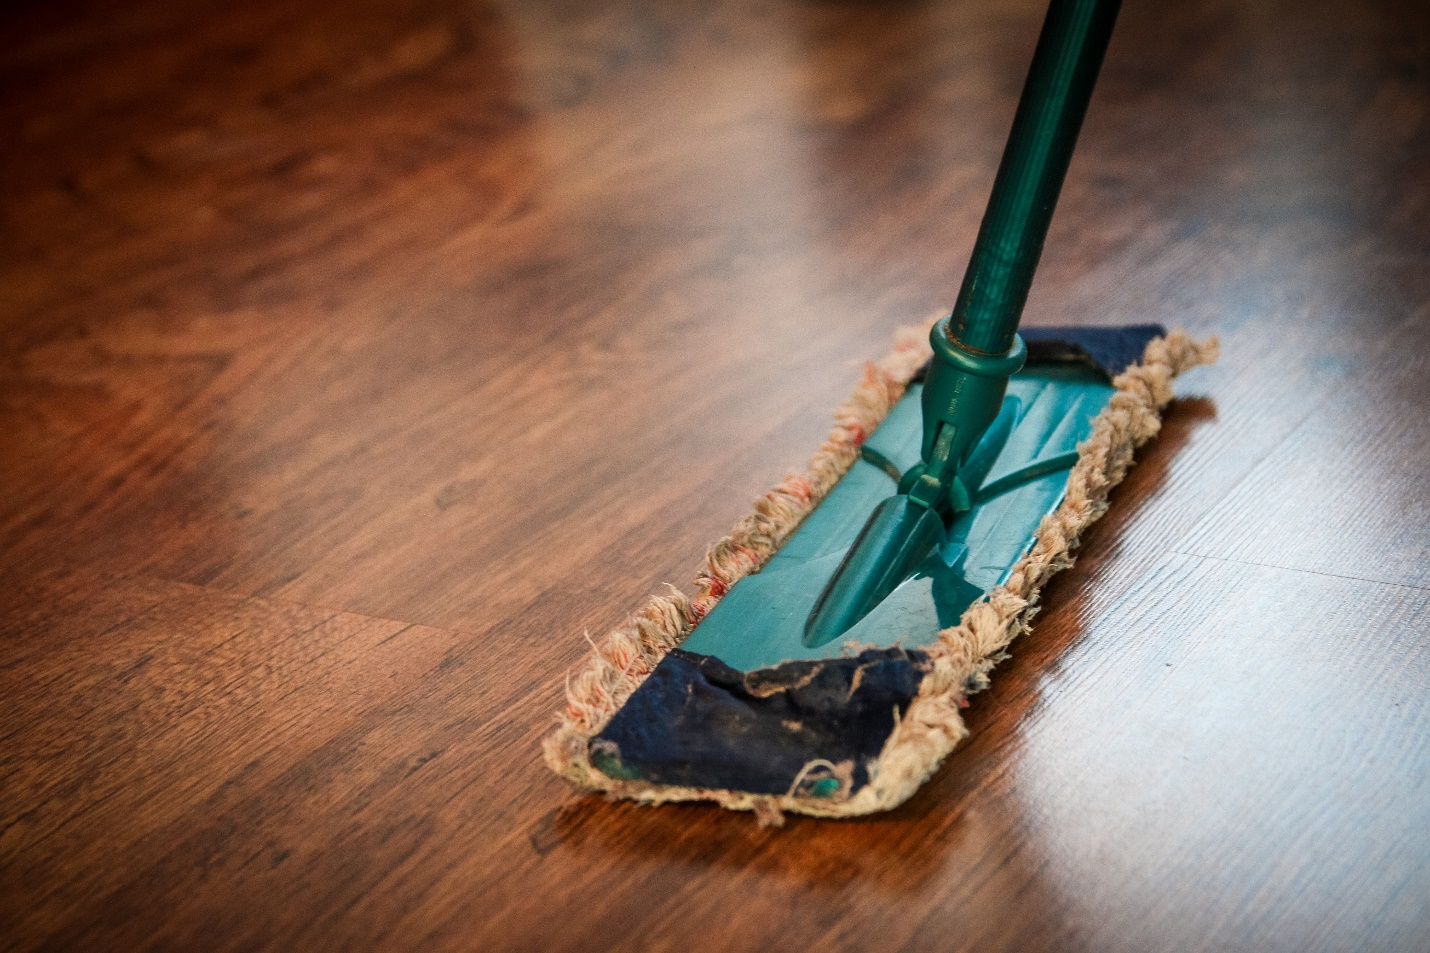 Mopping a wooden floor